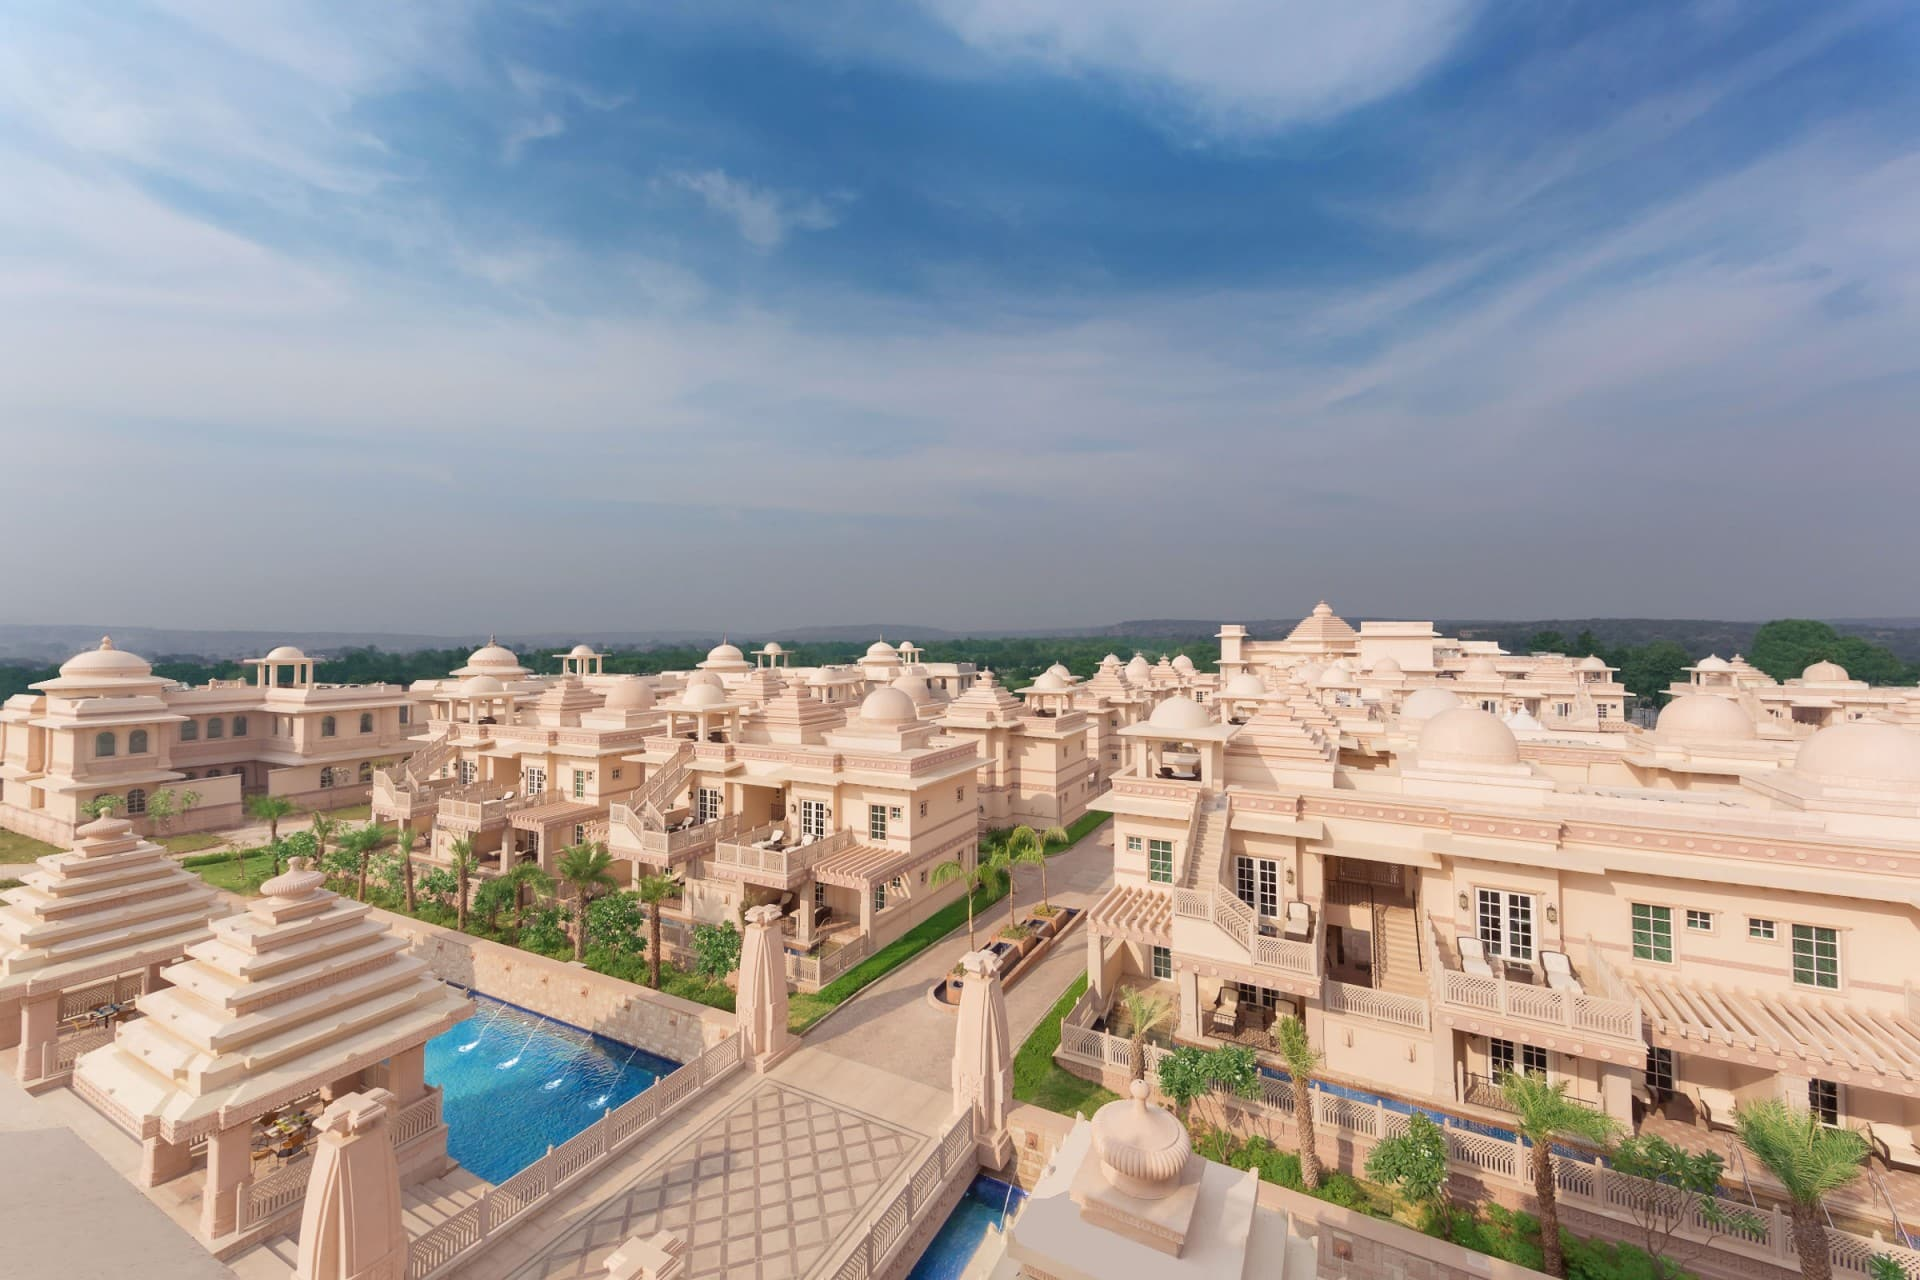 Best Architecture Photographer New Delhi India   Collection of Luxury Facade Photography India